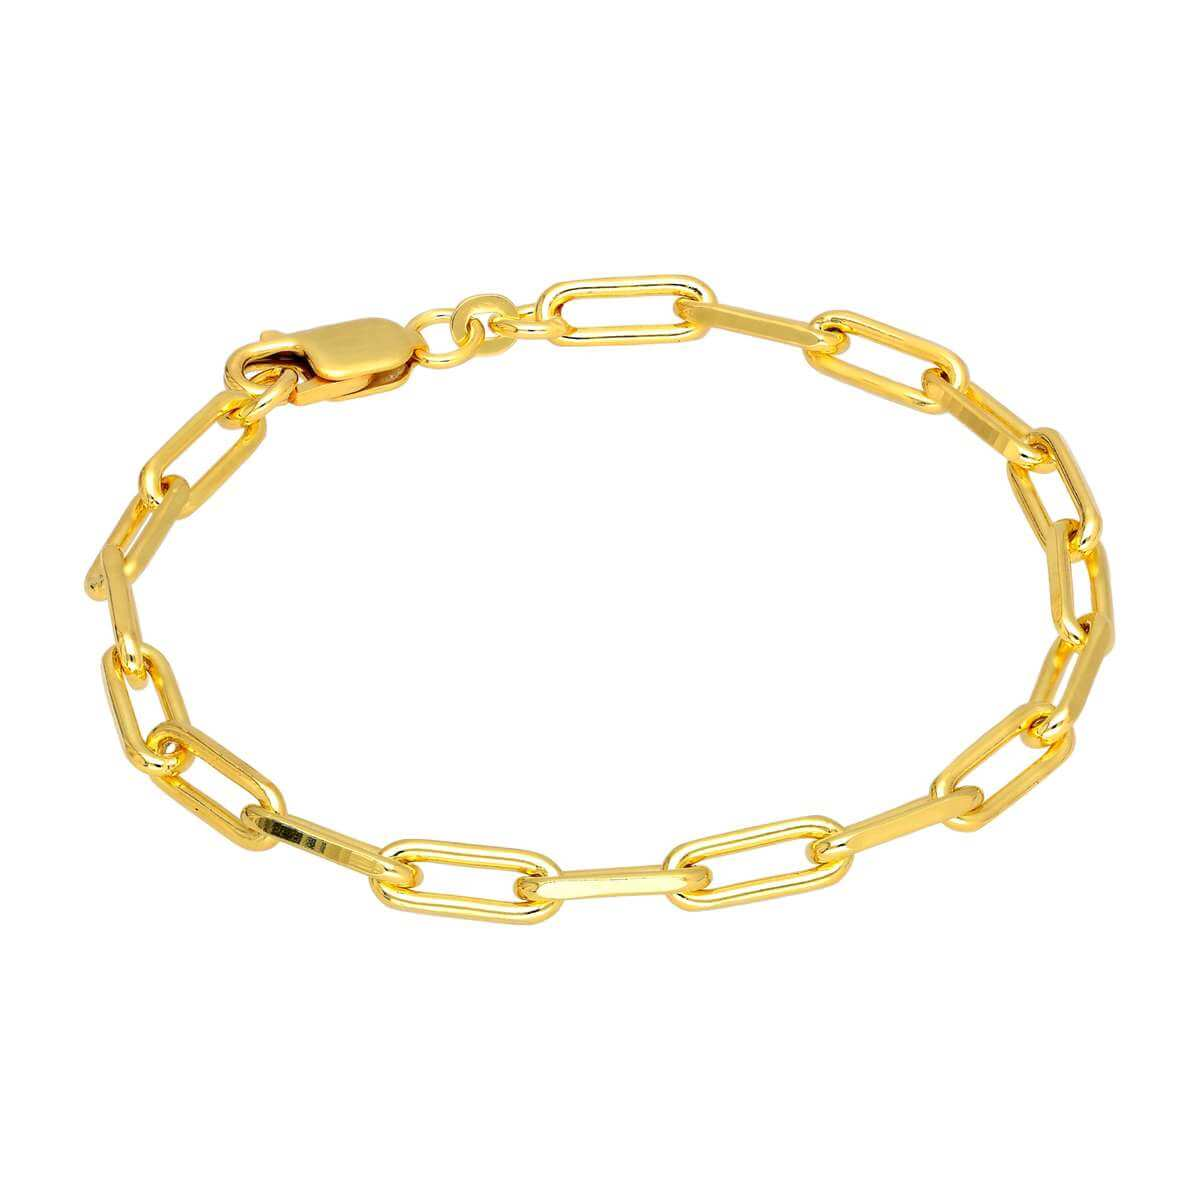 Gold Plated Sterling Silver Long Link Bracelet 7 Inches